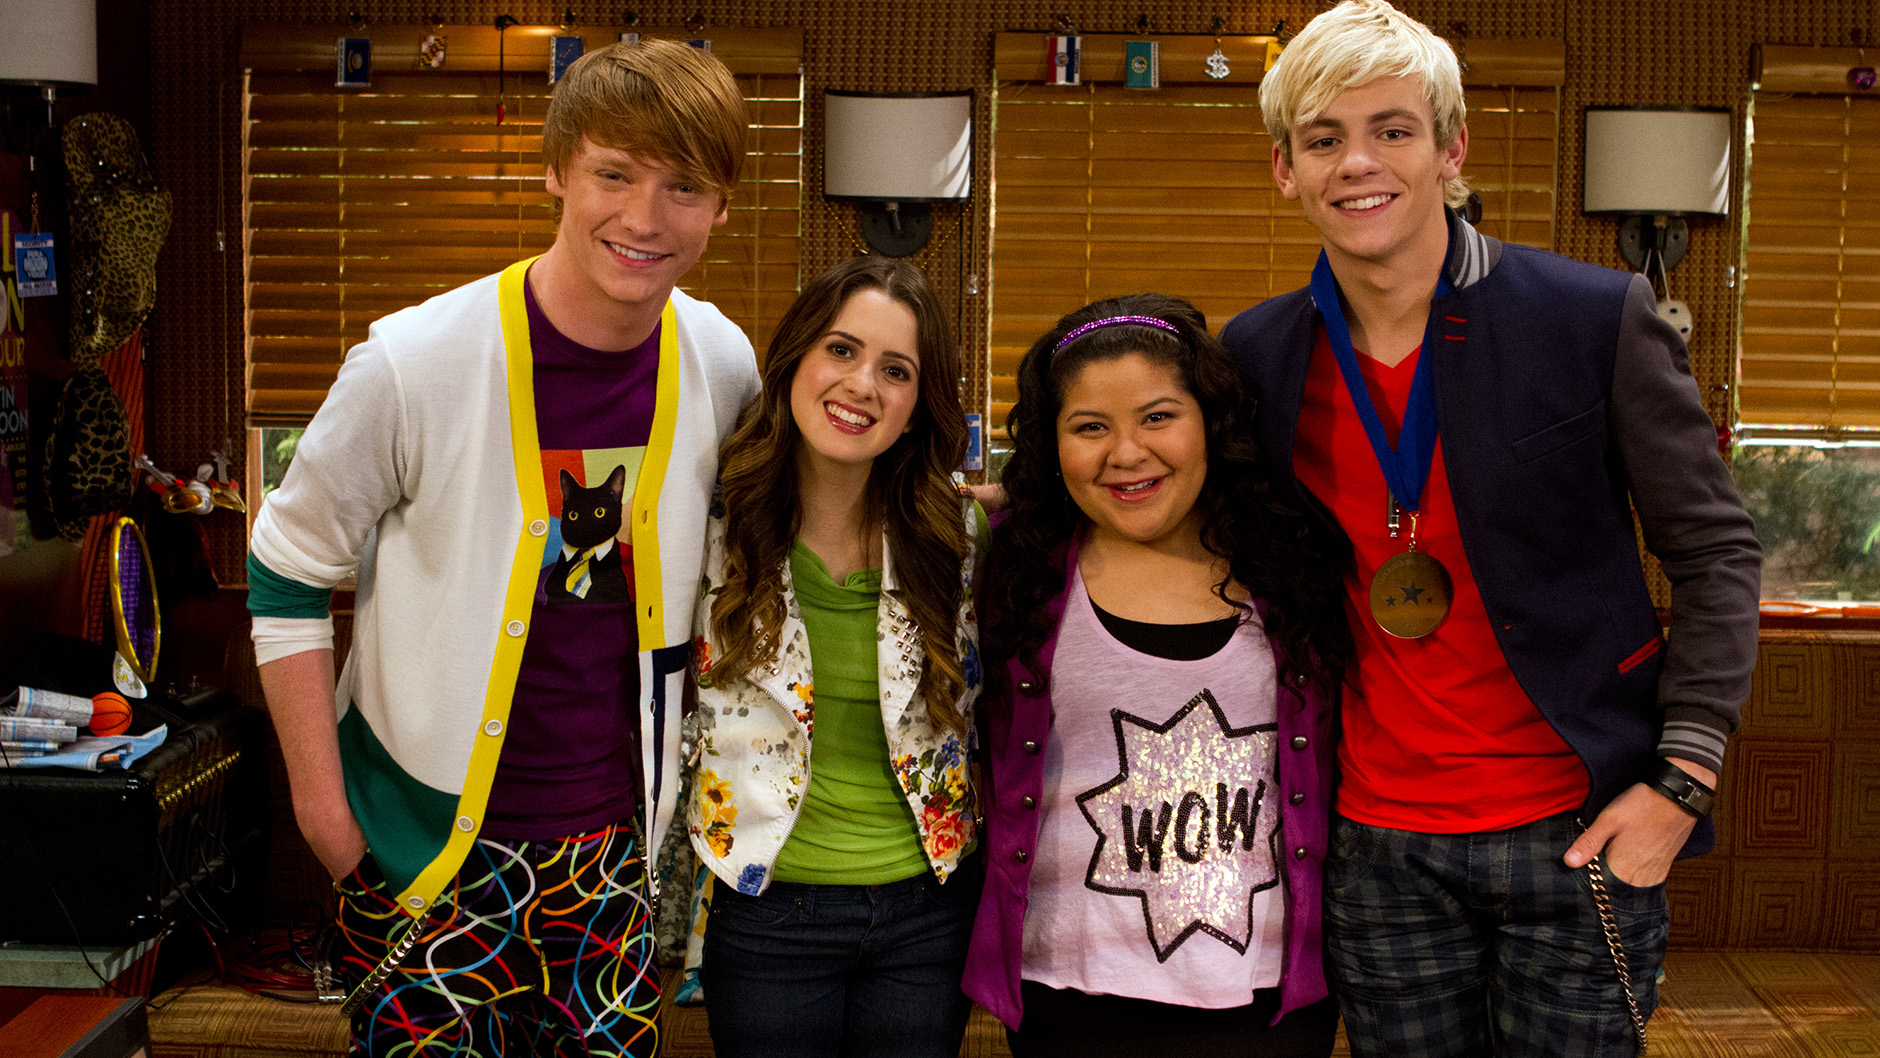 is austin dating ally in and what dezs